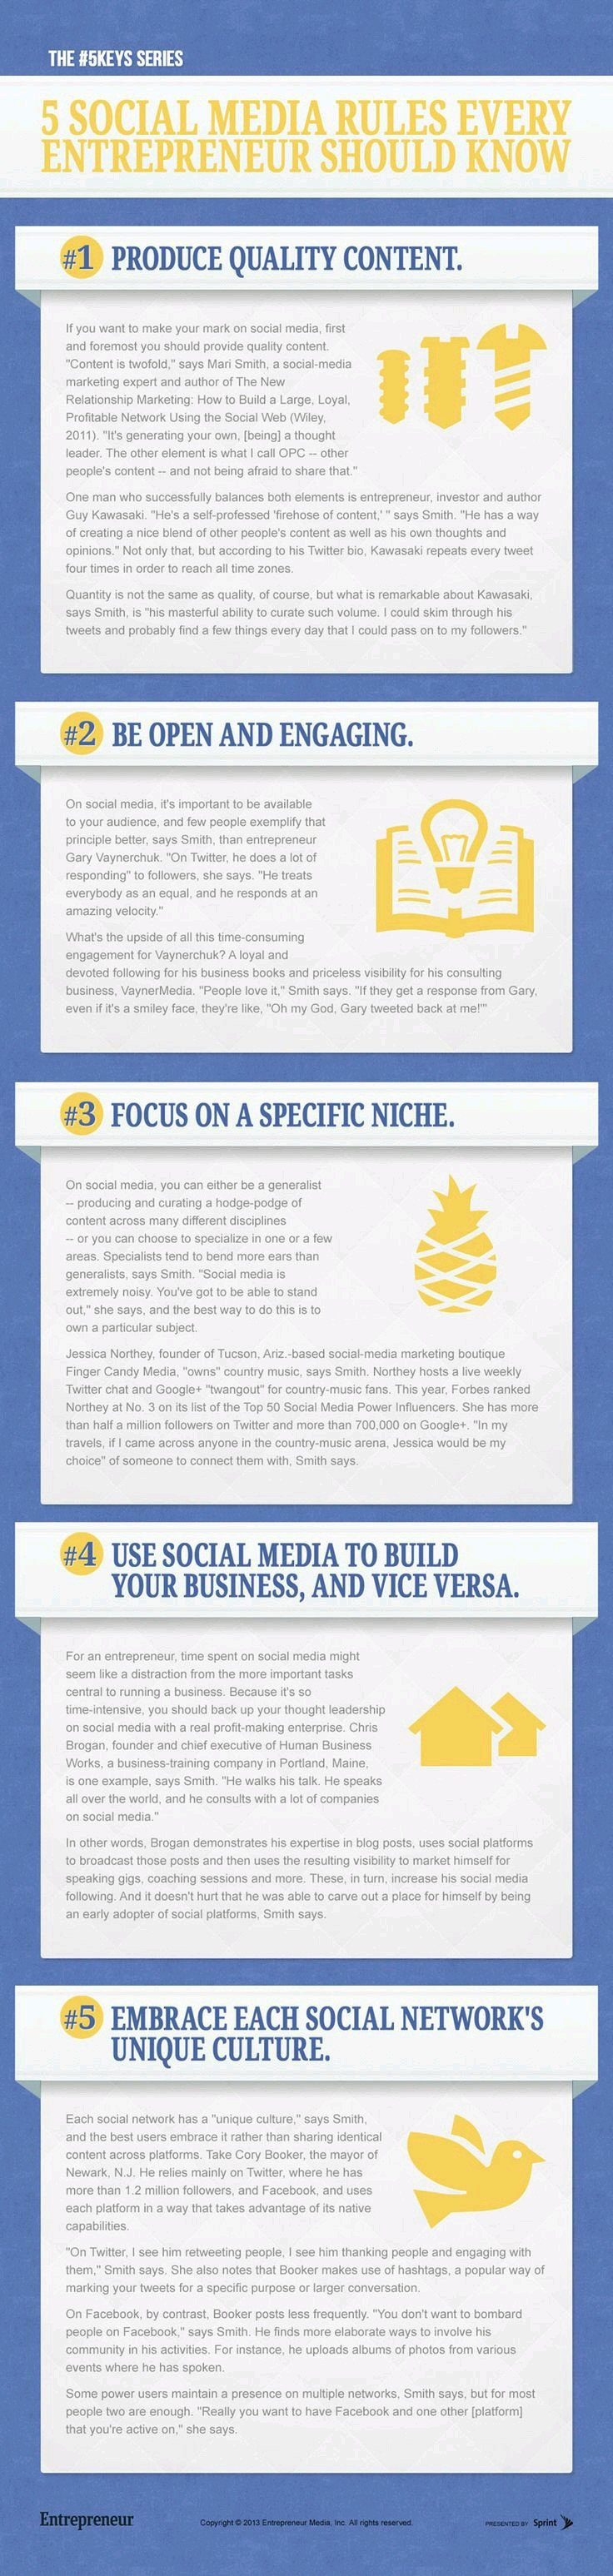 5 Social Media Rules Every Entrepreneur should Know #infographic